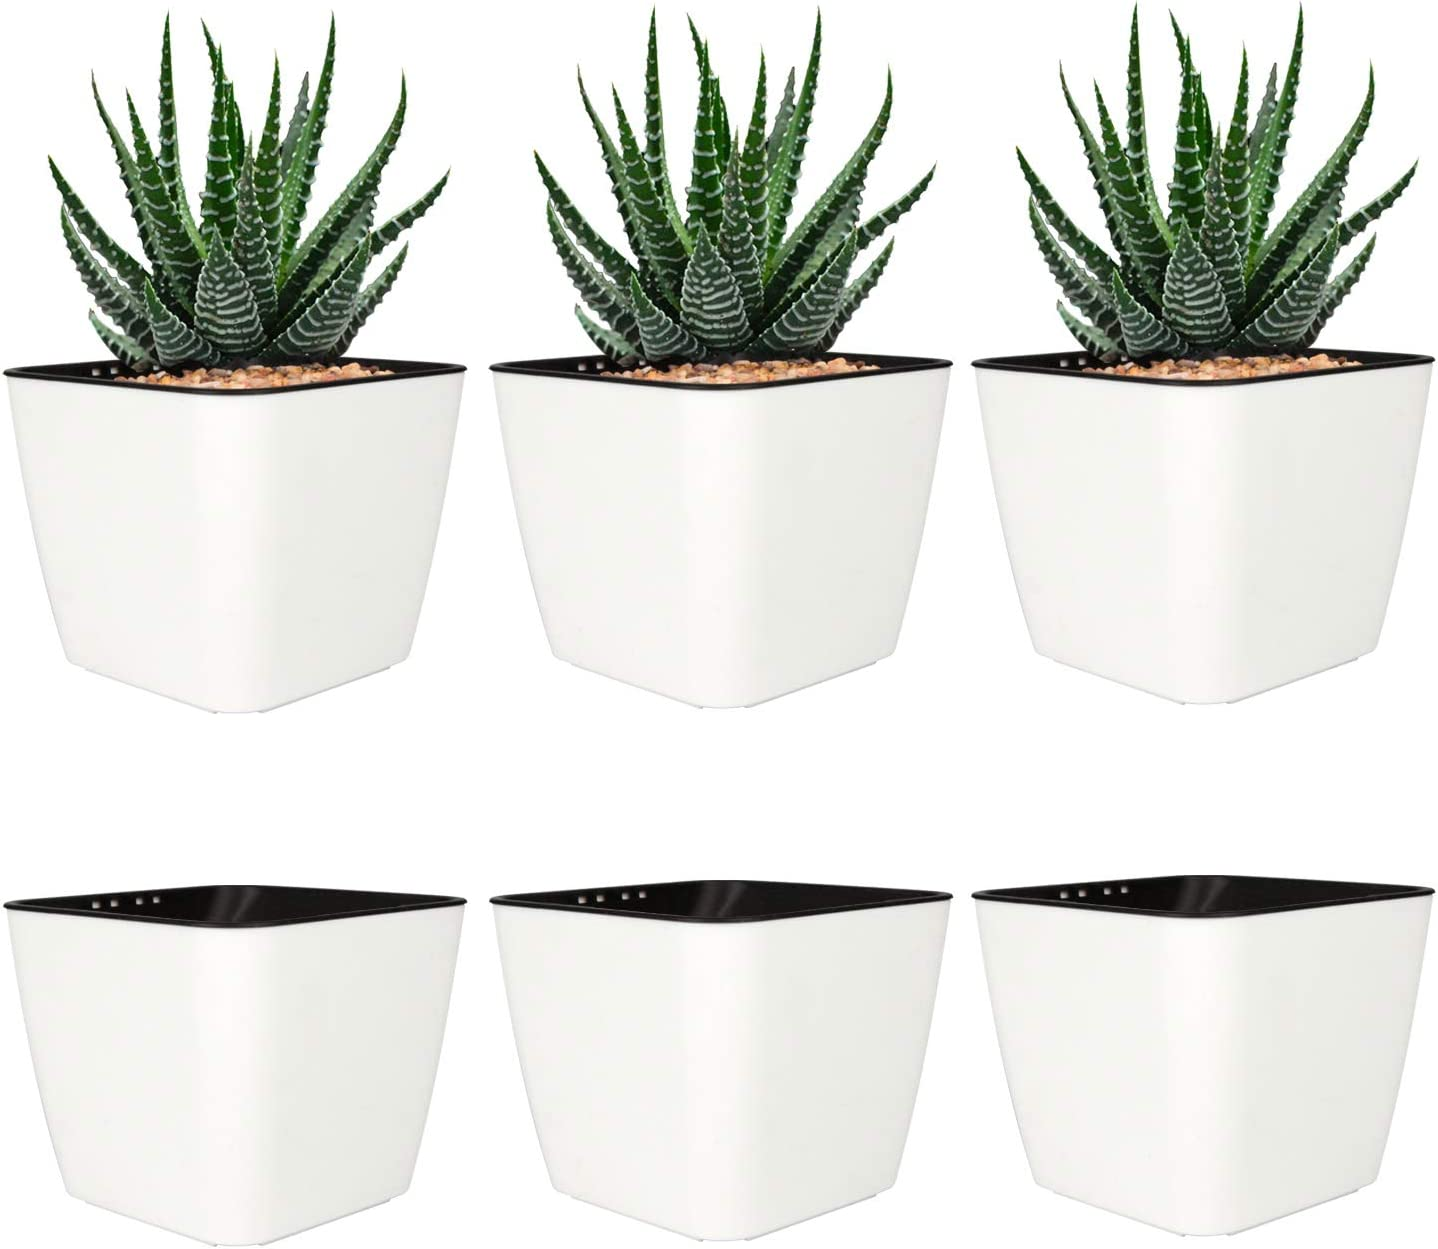 T4U 4 Inch Self Watering Plastic Planter with Liner Pack of 6 - Matte White, Modern Decorative Small Planter Pot for House Plants, Aloe, Herbs, African Violets, Succulents and More